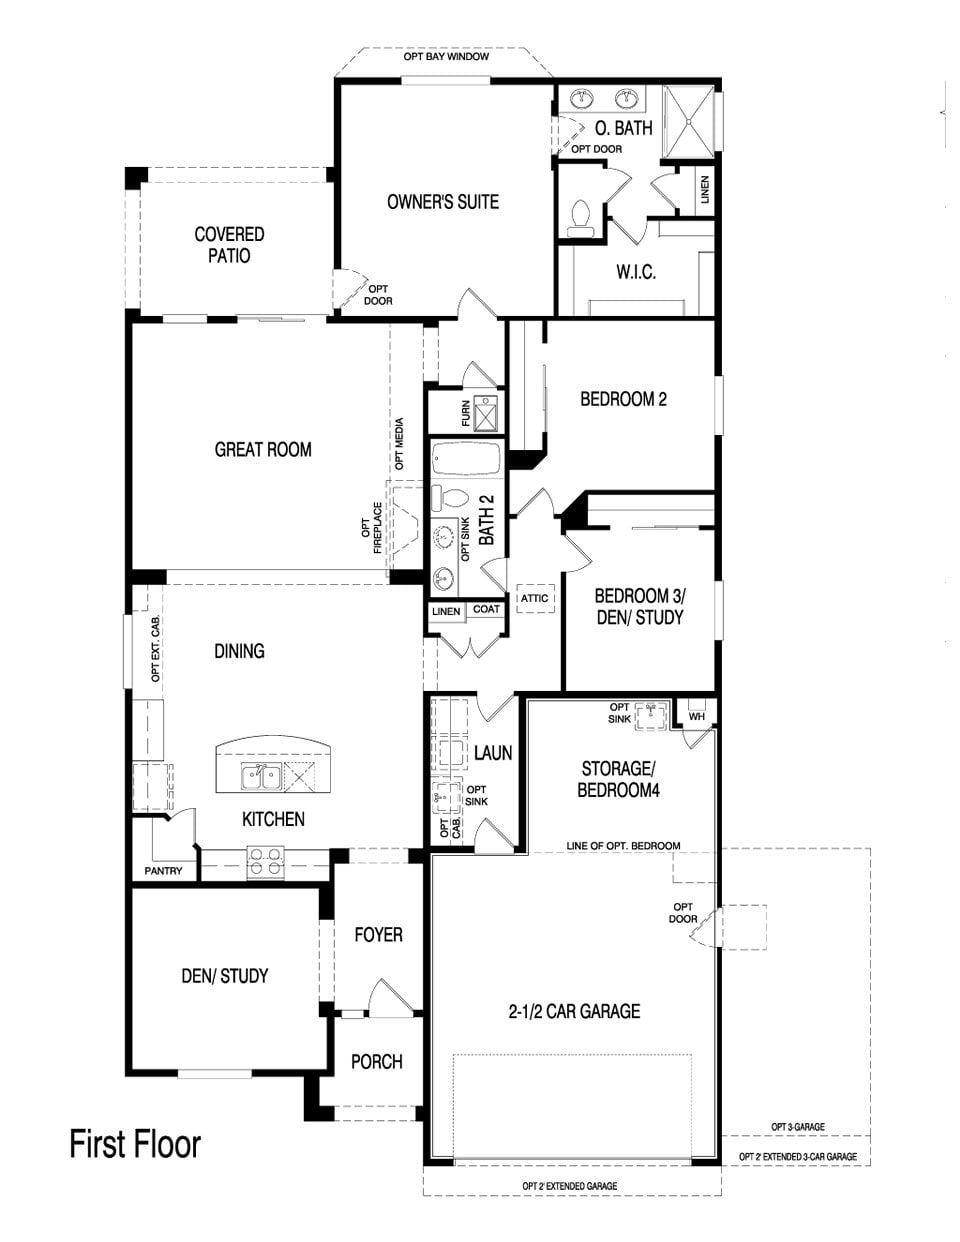 Pulte homes floor plans 2005 for Fun house plans